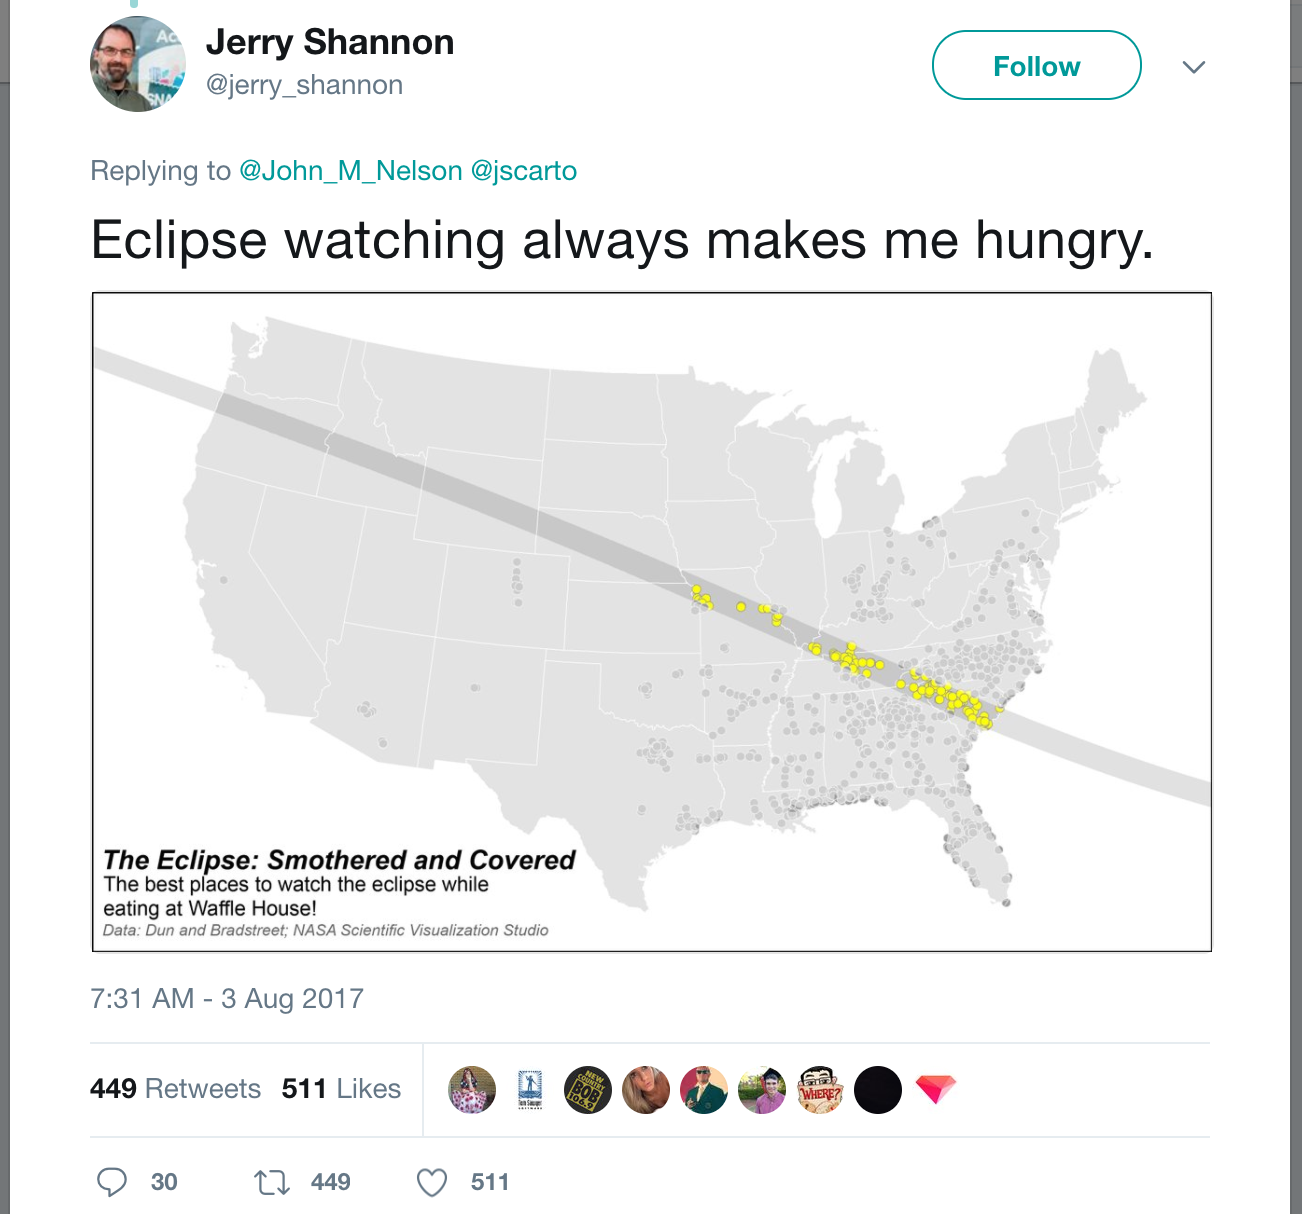 UGA Professor Creates Viral Waffle House Eclipse Map | WUGA ...